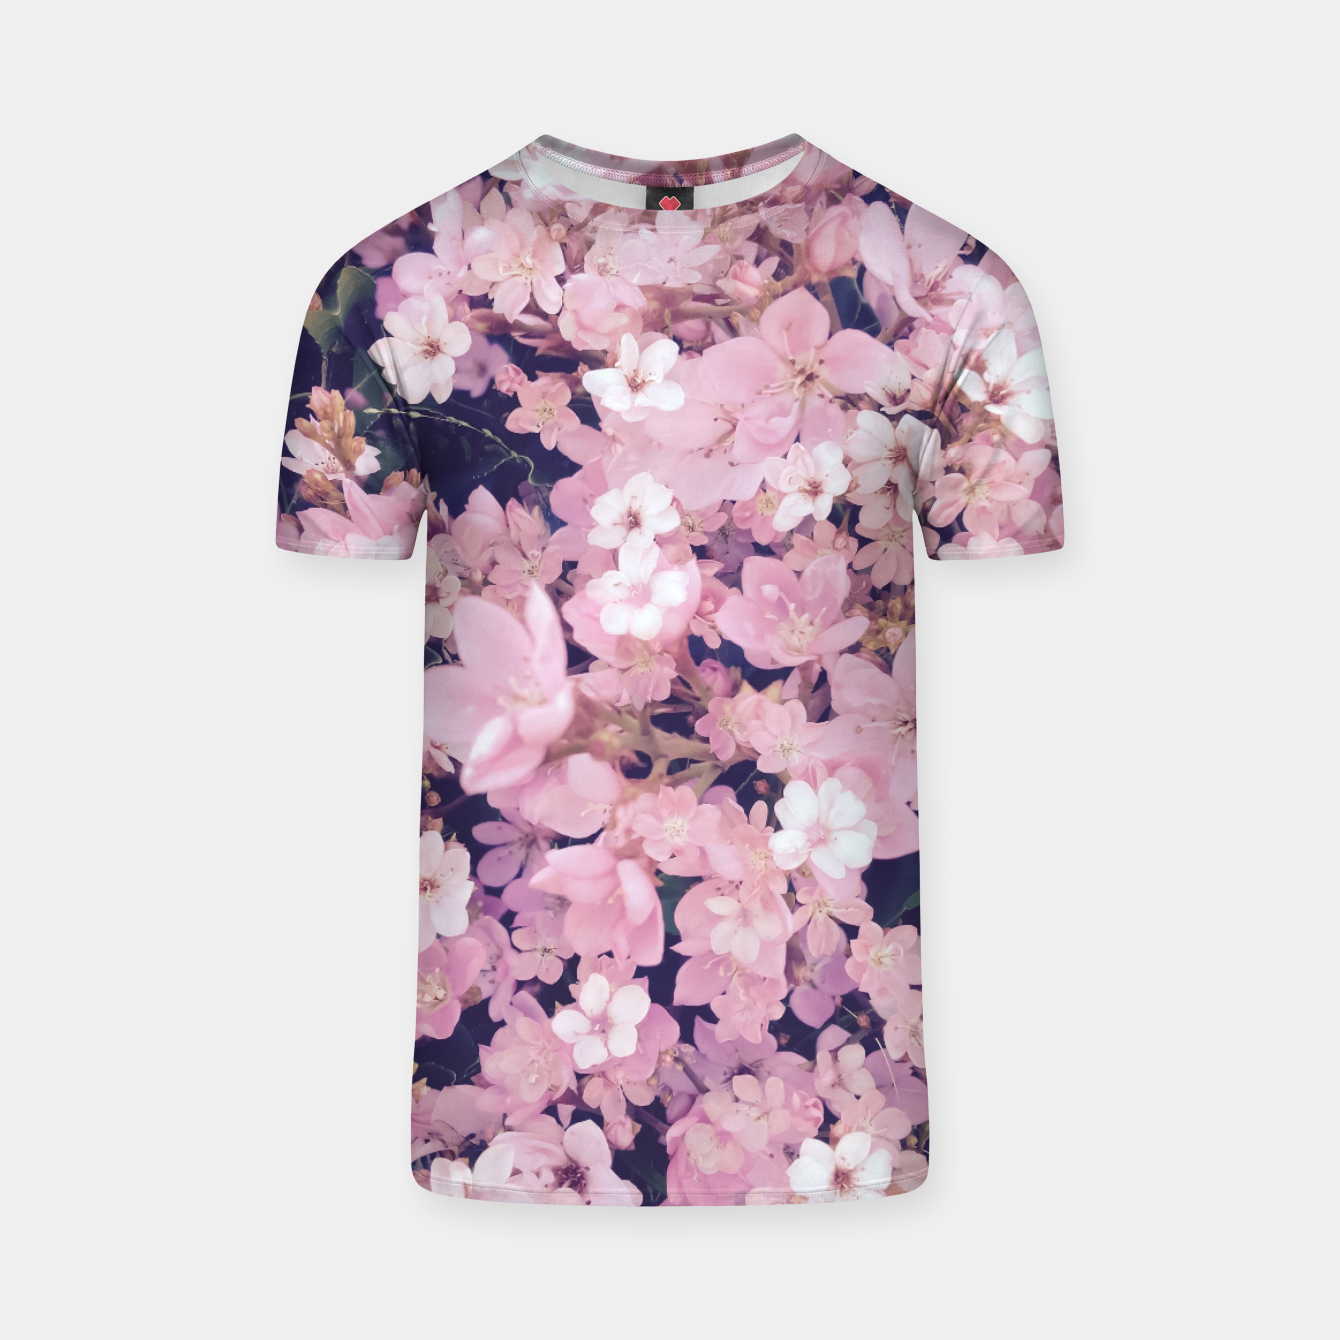 a60539f1b8d8a7 blossom blooming pink flower texture pattern abstract background T-shirt,  Live Heroes